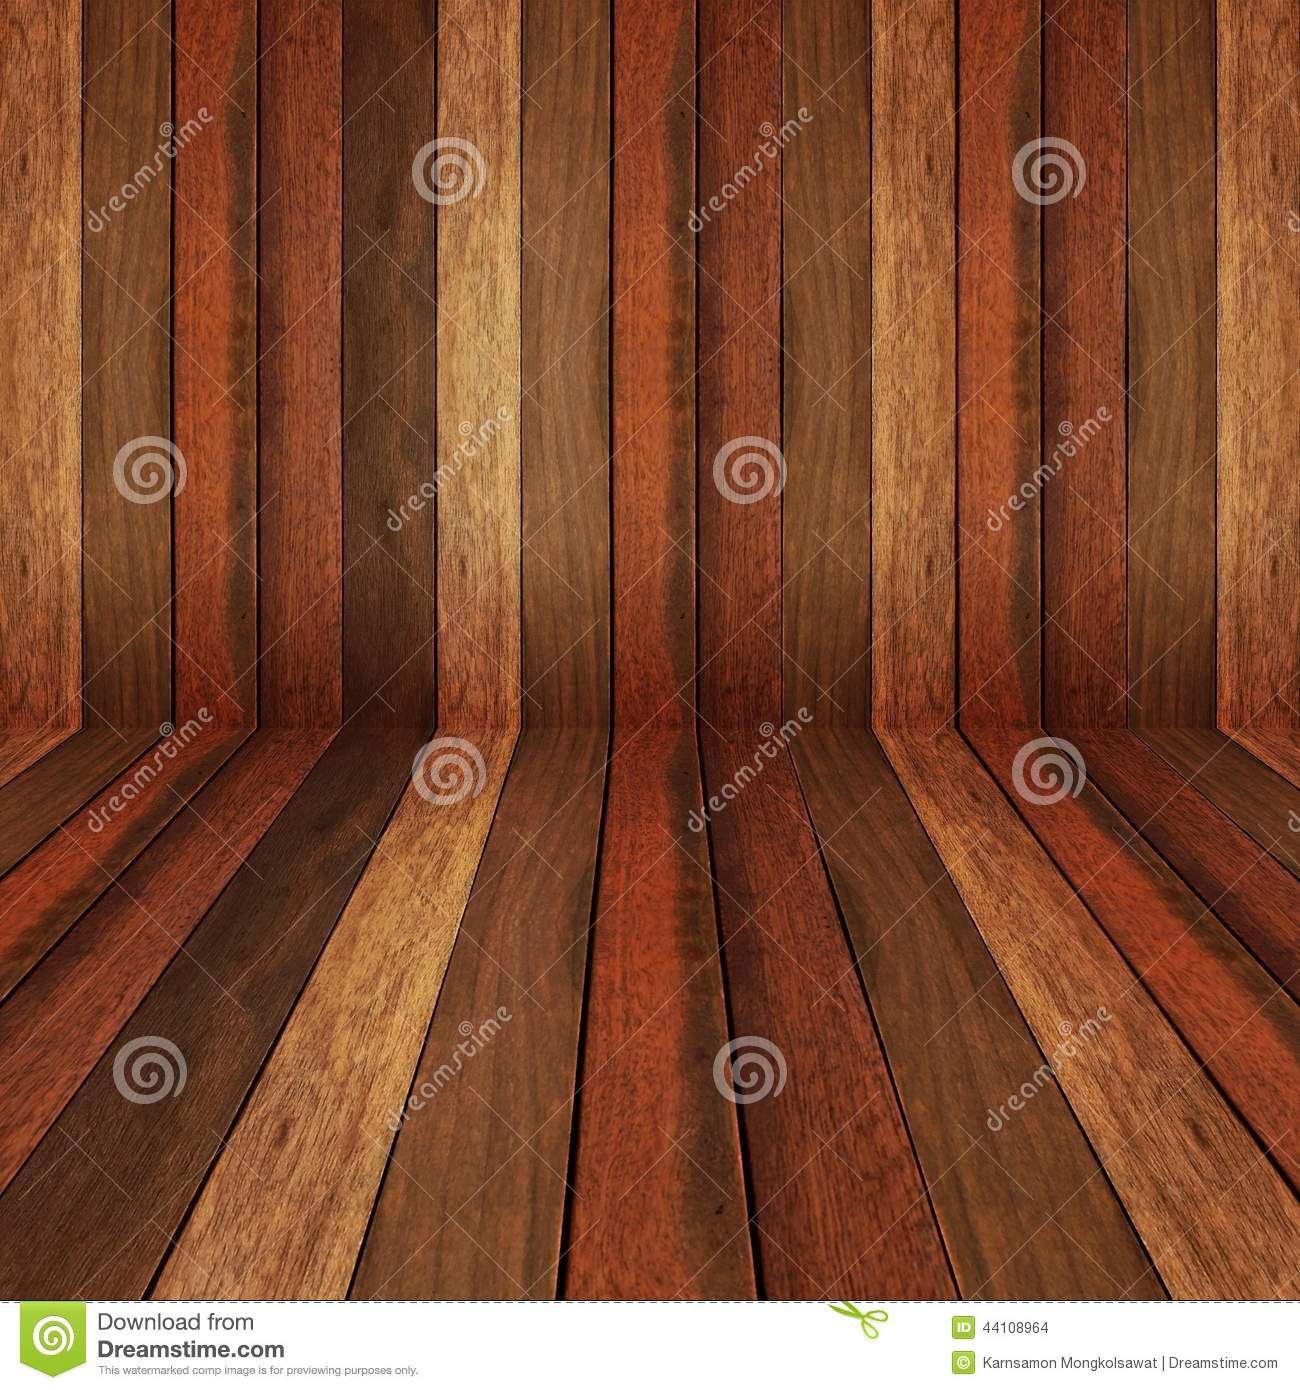 Superb img of Wooden Panel Wall And Floor Interior Background Stock Photo Image  with #A34D28 color and 1300x1390 pixels